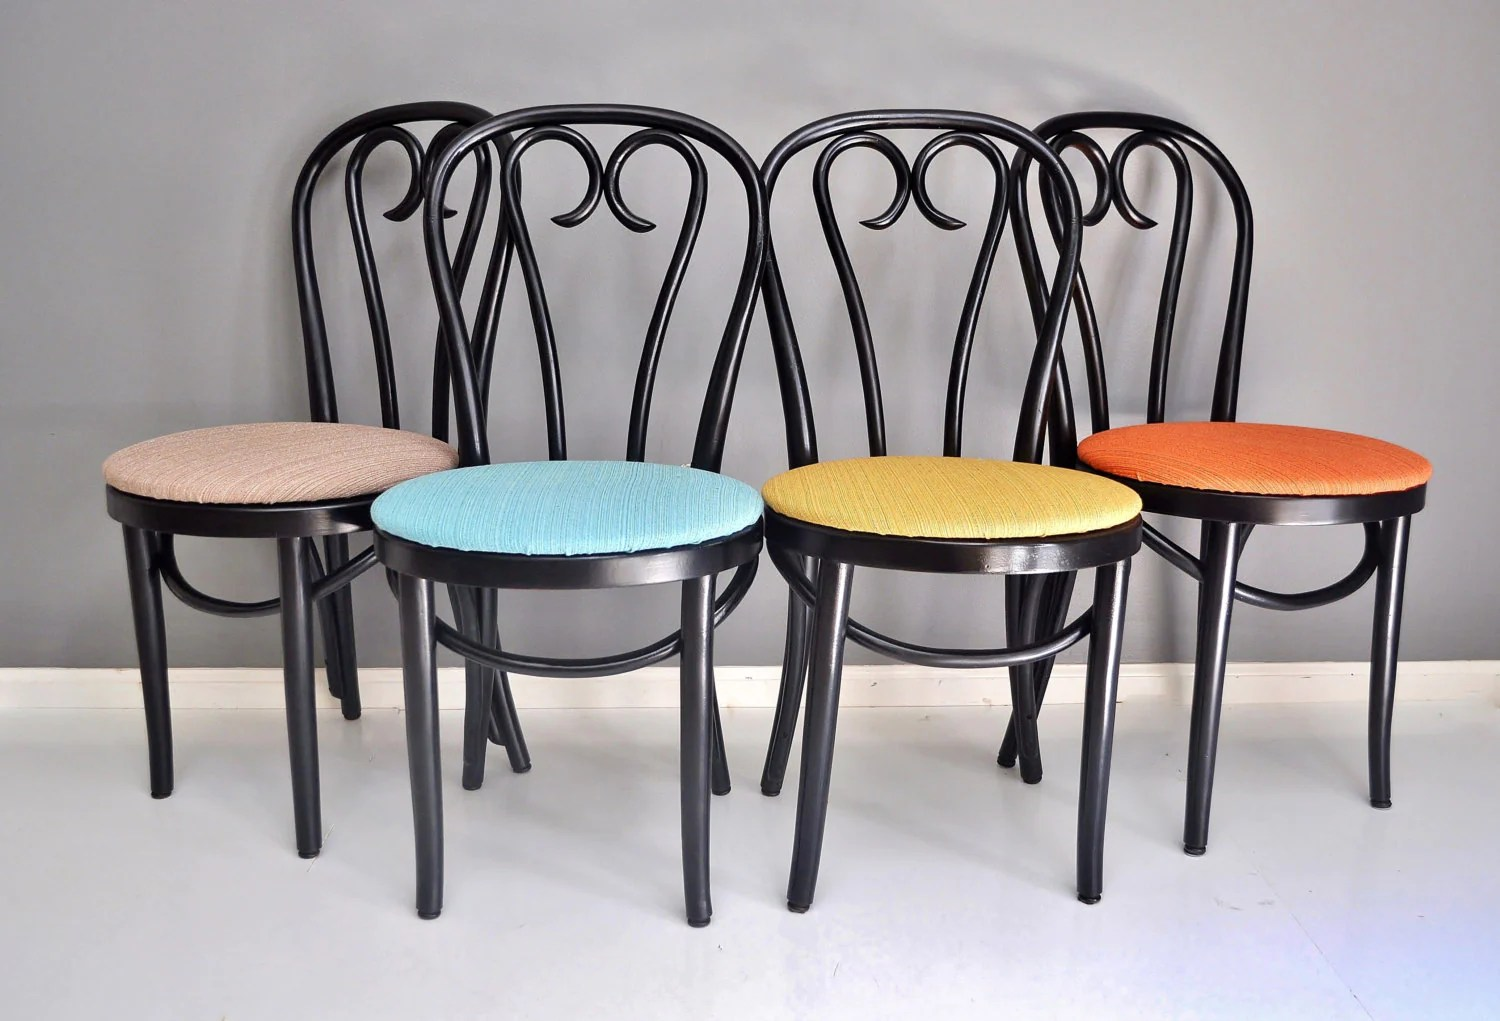 Cafe Chairs Vintage Bentwood Cafe Chairs Set Of Four Thonet Style Dining